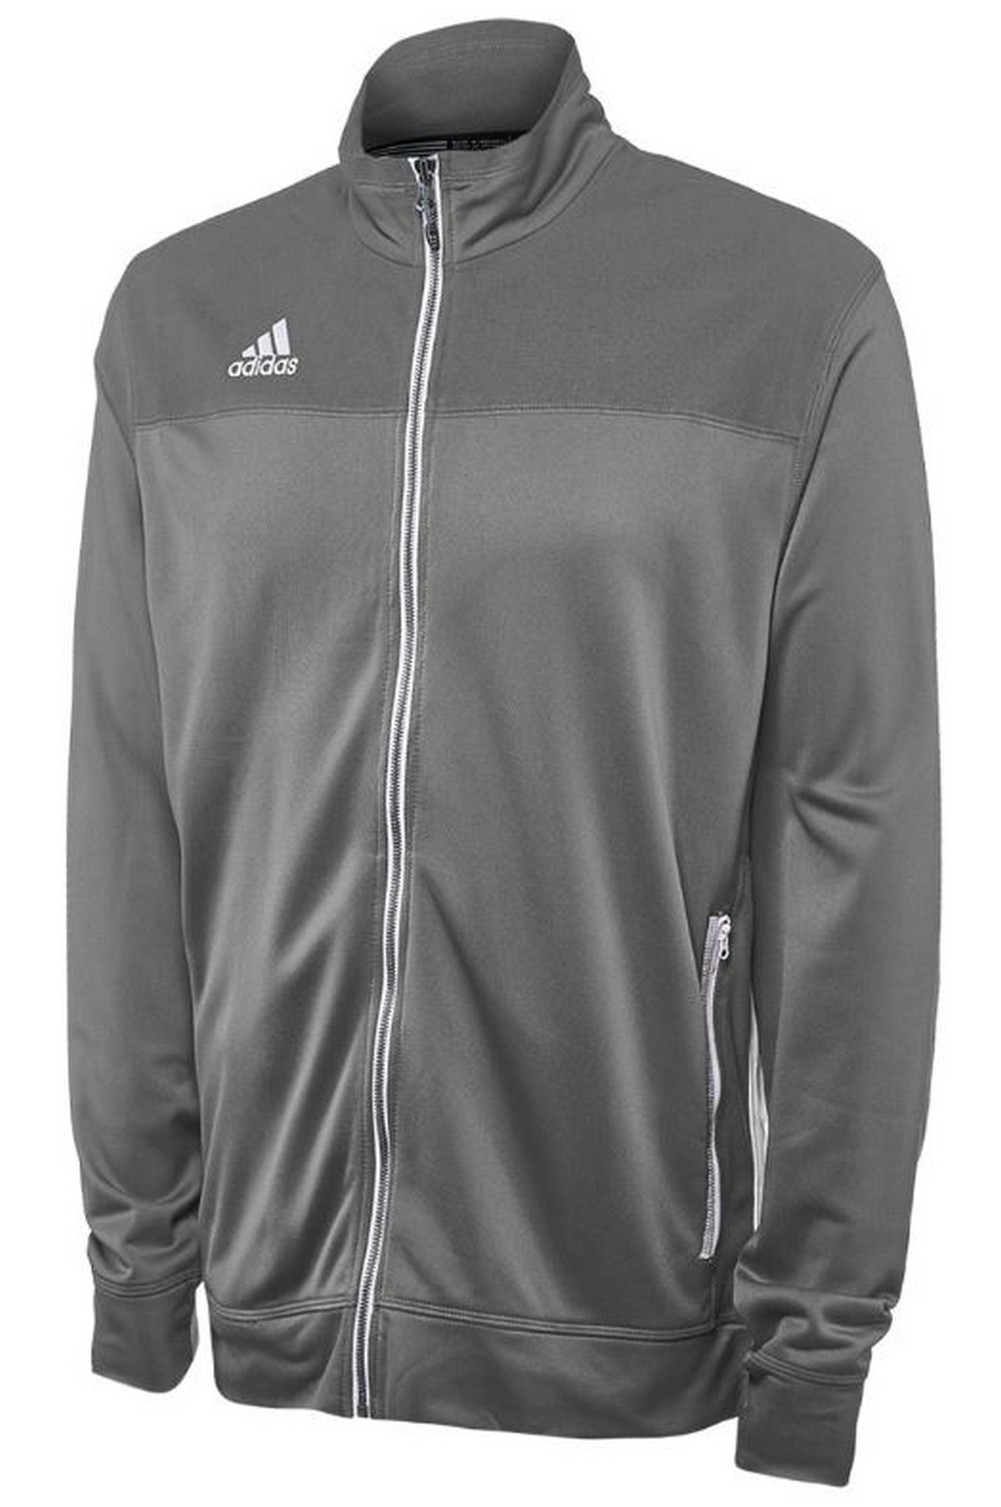 Details about Adidas Men's Adult Utility Jacket Full Zip Sport Climalite Color Choice 6711A